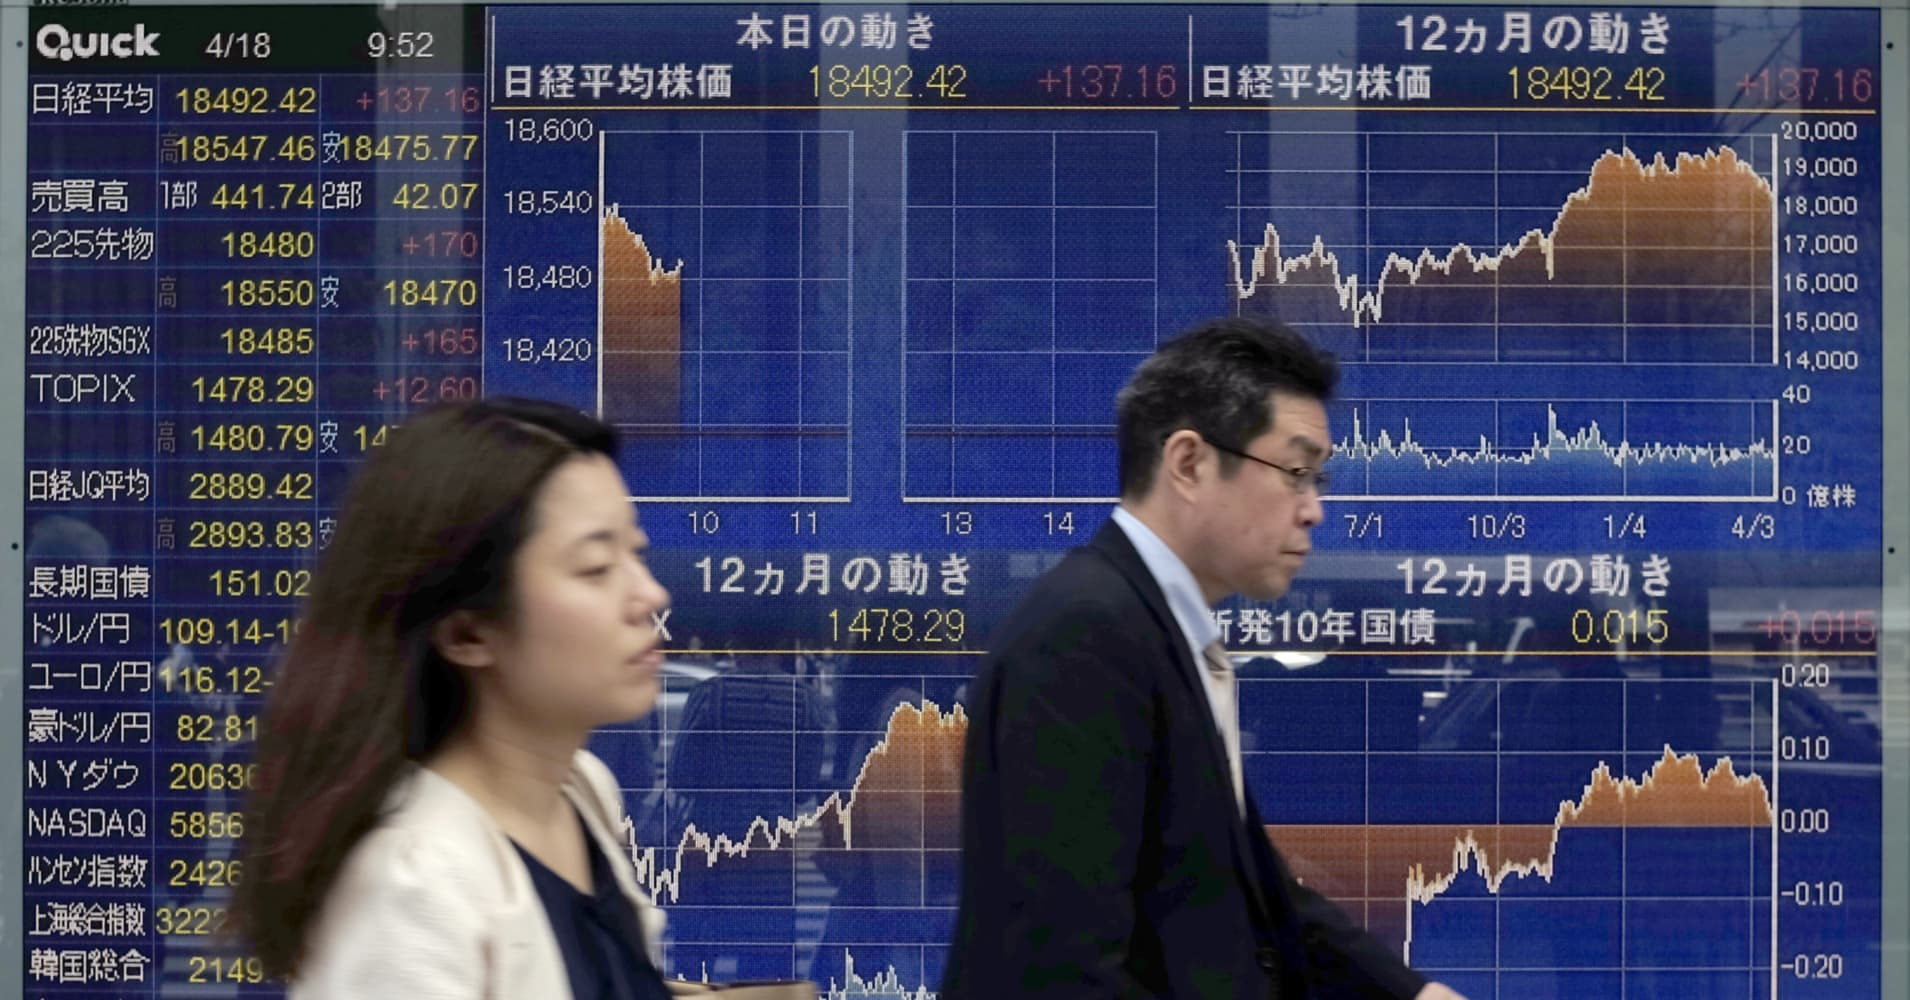 Asian shares gain as risk aversion takes a backseat; Nikkei rises 1.1%